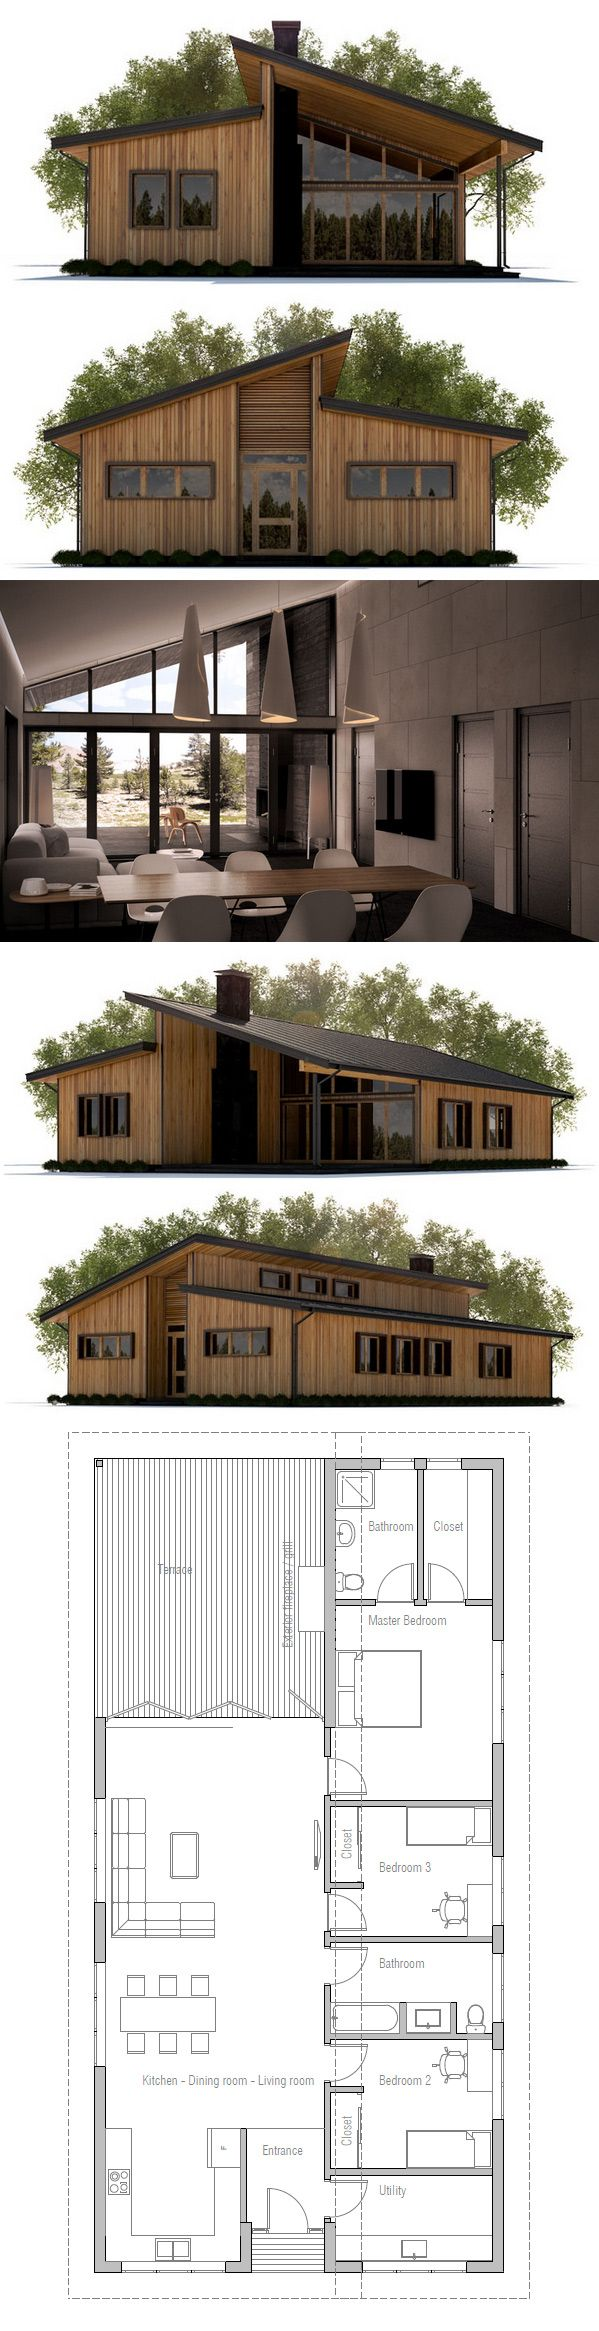 Small House Plan Hogar Dulce Hogar Pinterest Hus